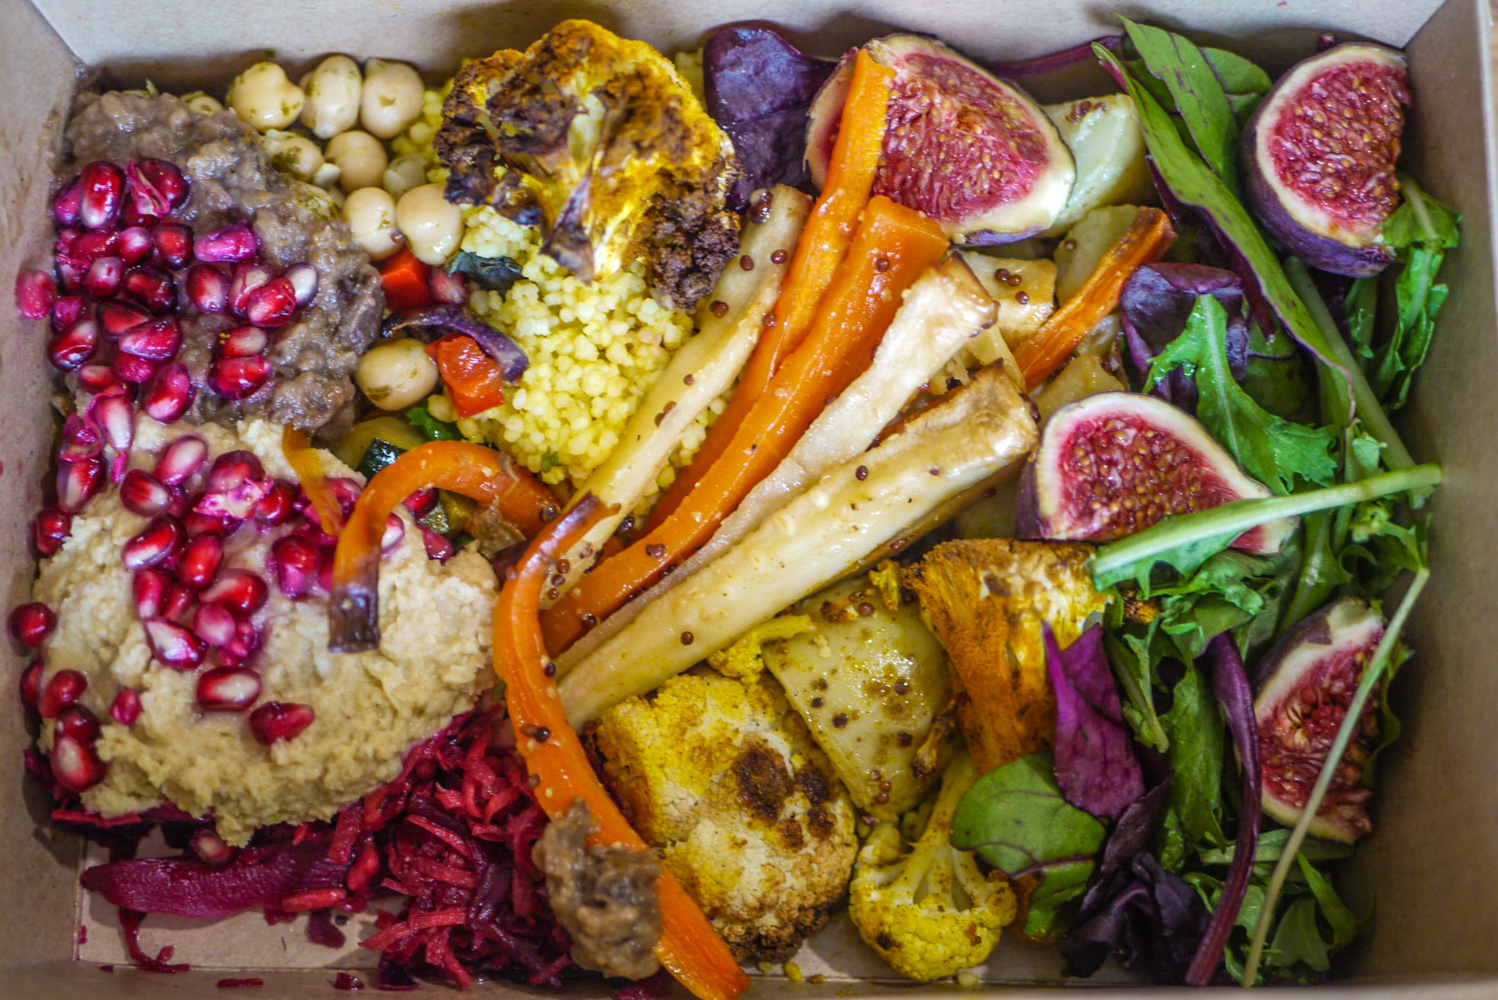 Salad box from Nibble NQ